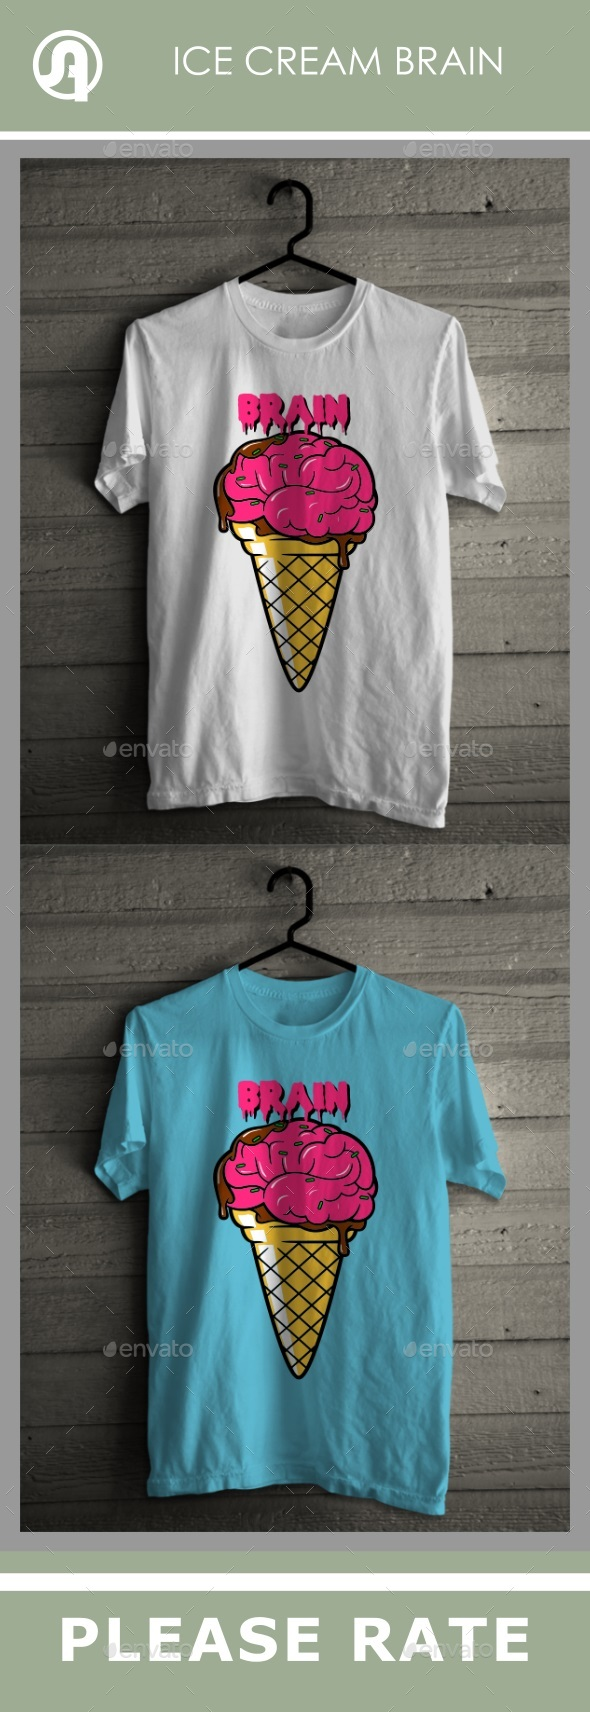 Icecream Cone Brain - T-Shirts